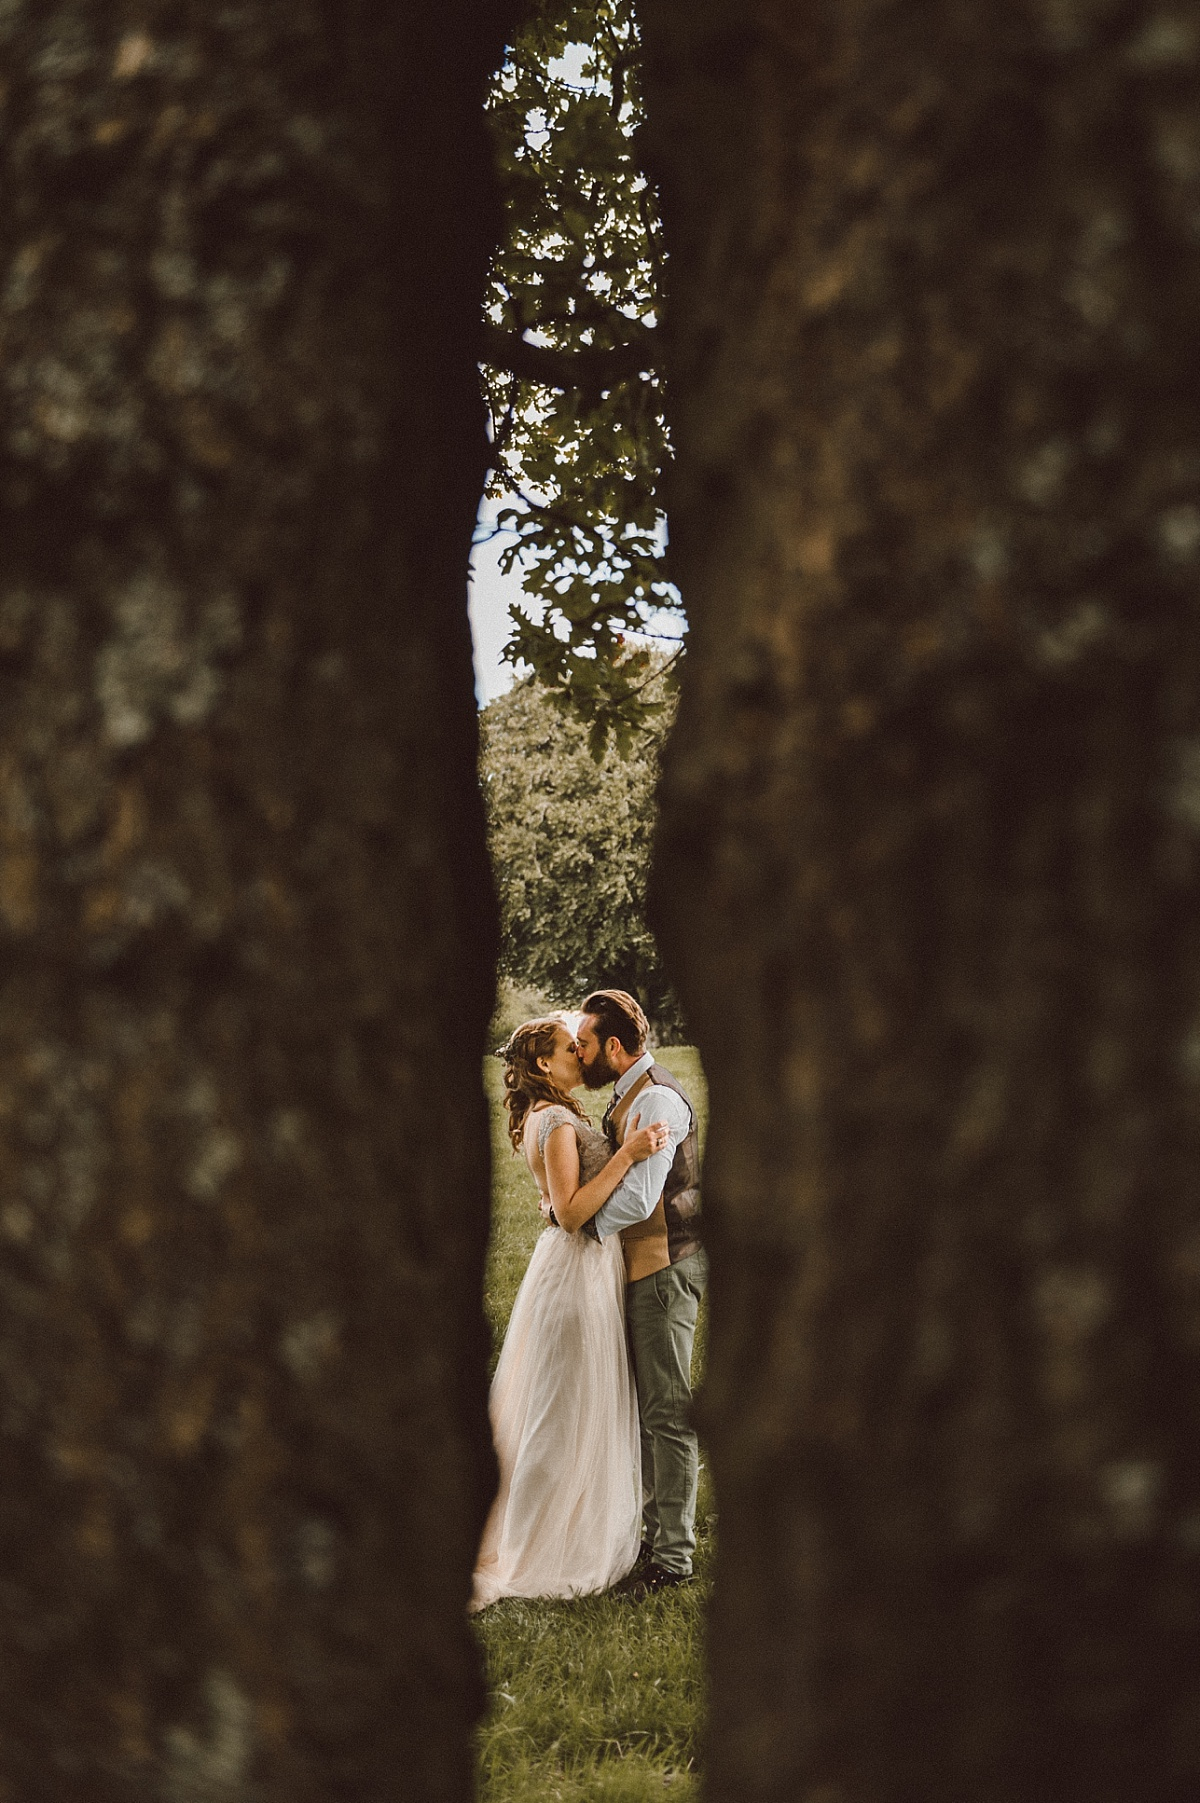 Photo looking through trees at couple kissing